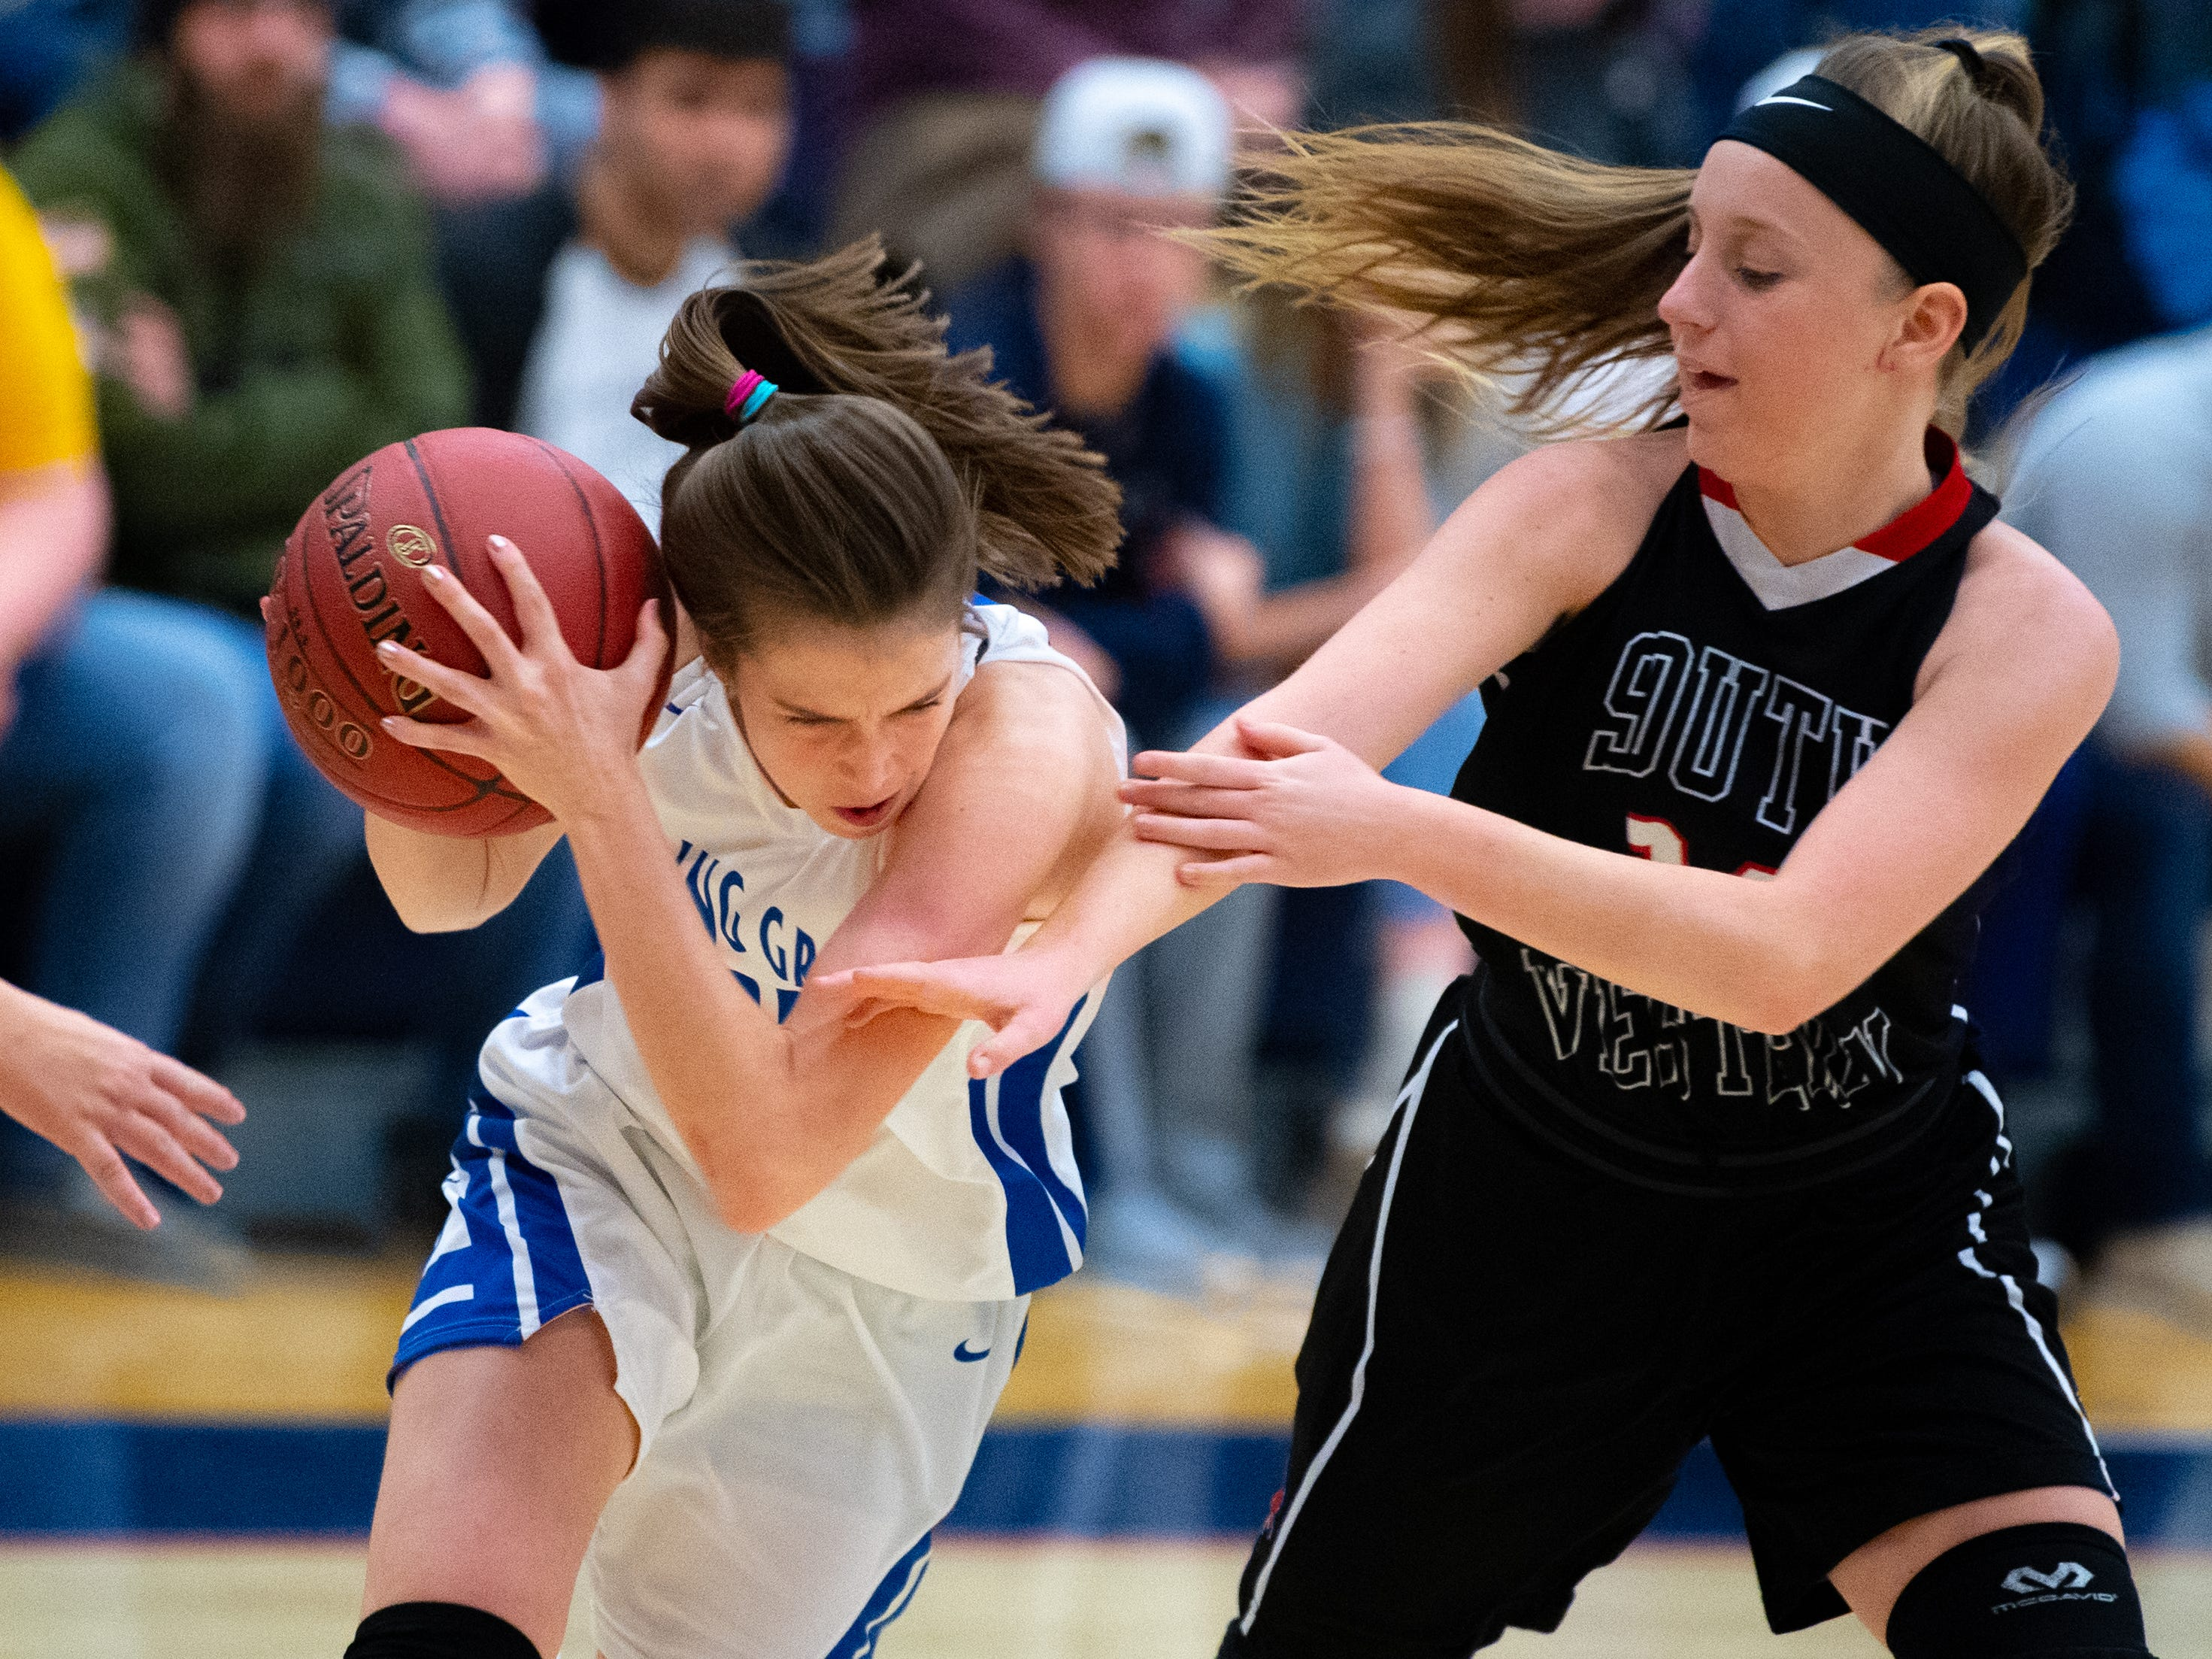 Ella Kale (22) of Spring Grove tries to get past South Western's Madi Wisensale (24) during the girls' basketball game, Friday, January 11, 2019. The Rockets defeated the Mustangs 51 to 38.